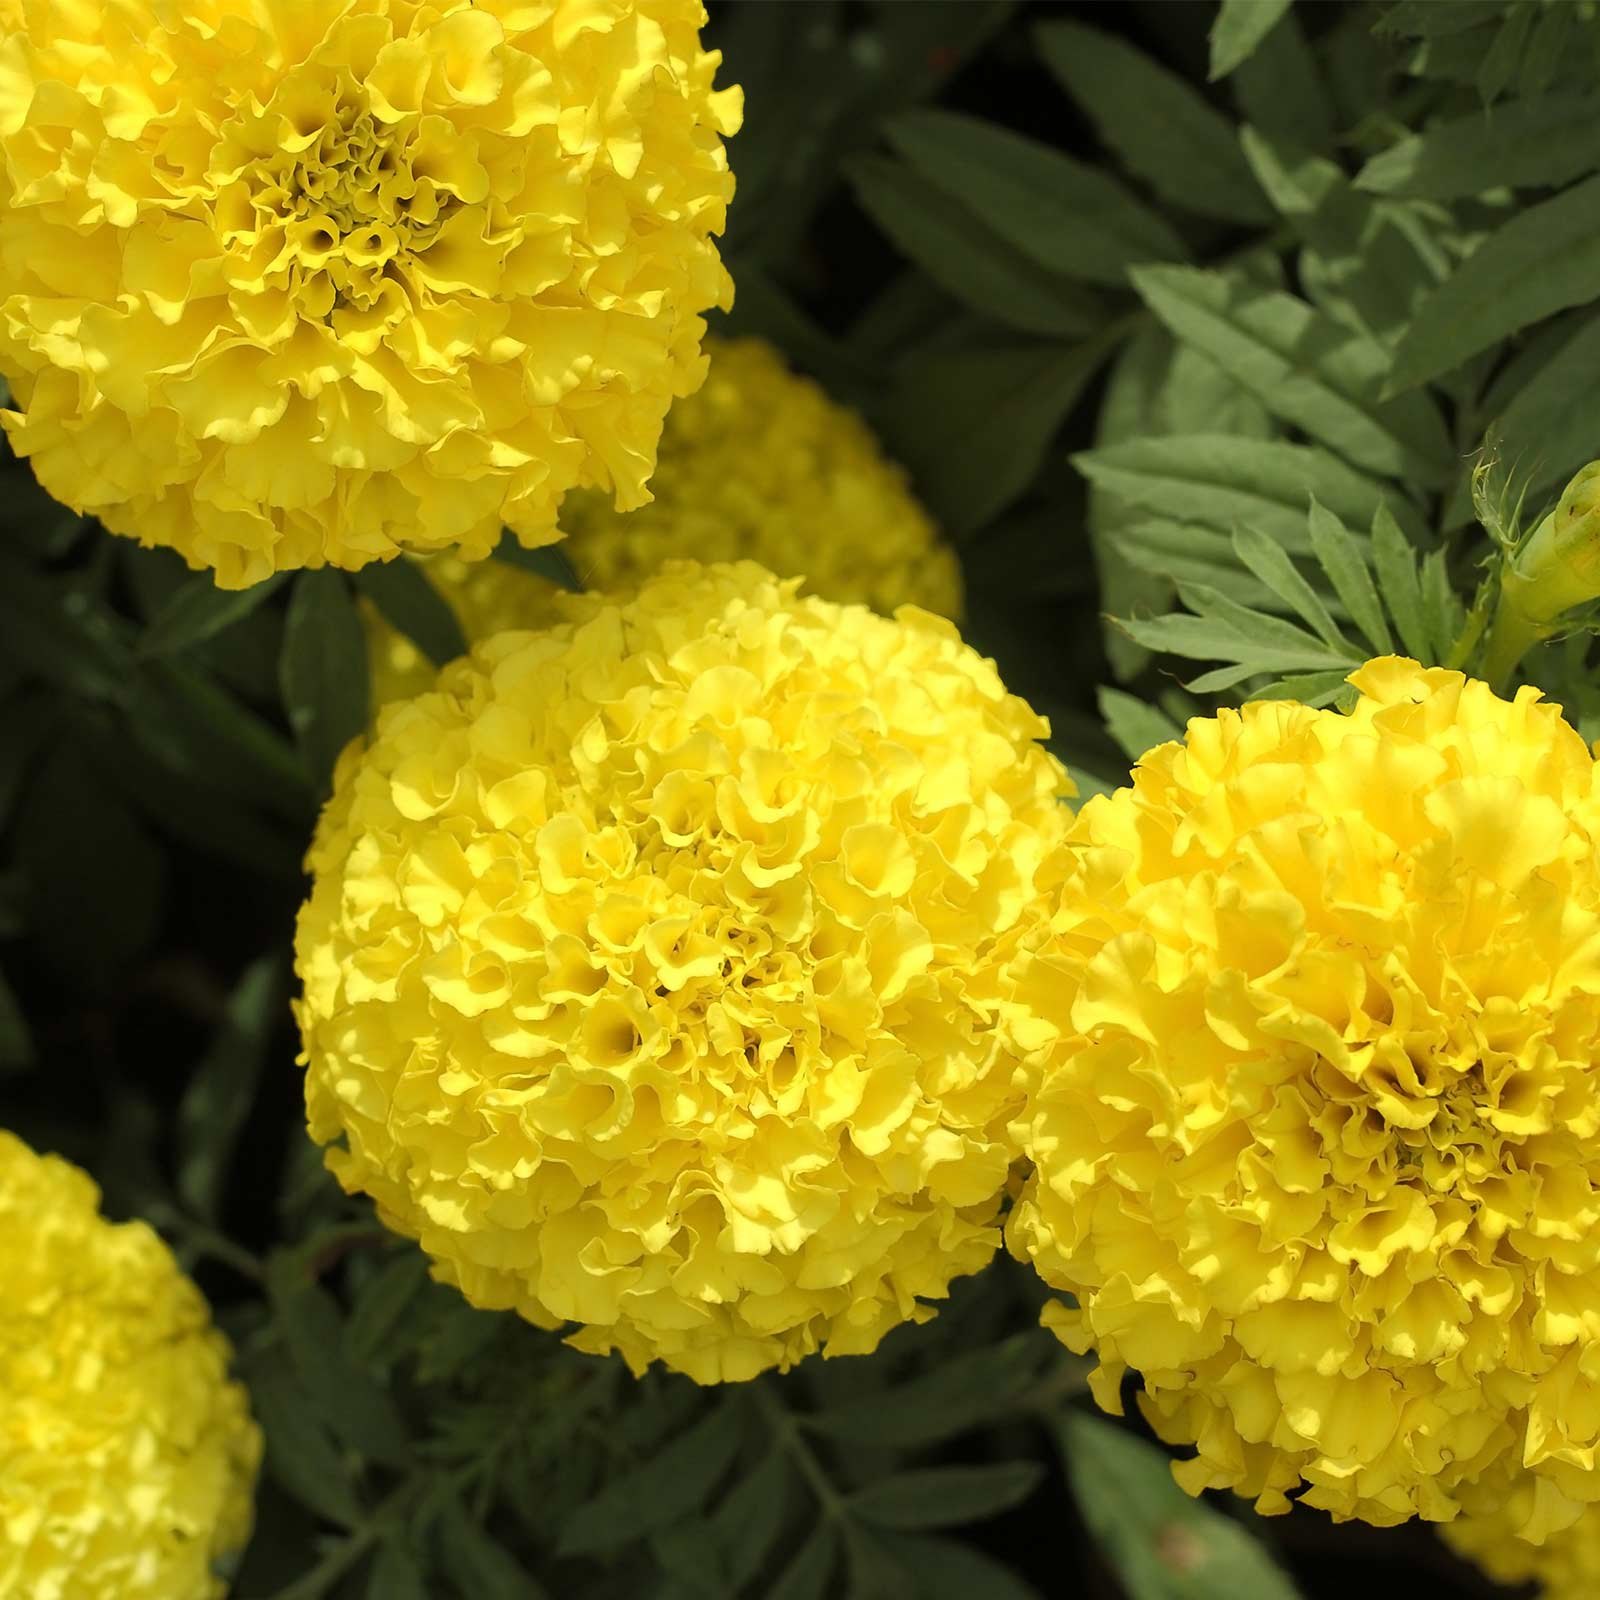 African Marigold Flower Garden Seeds - Crush Series F1 - Pineapple Imp - 100 Seeds - Annual Flower Gardening Seeds - Tagetes erecta